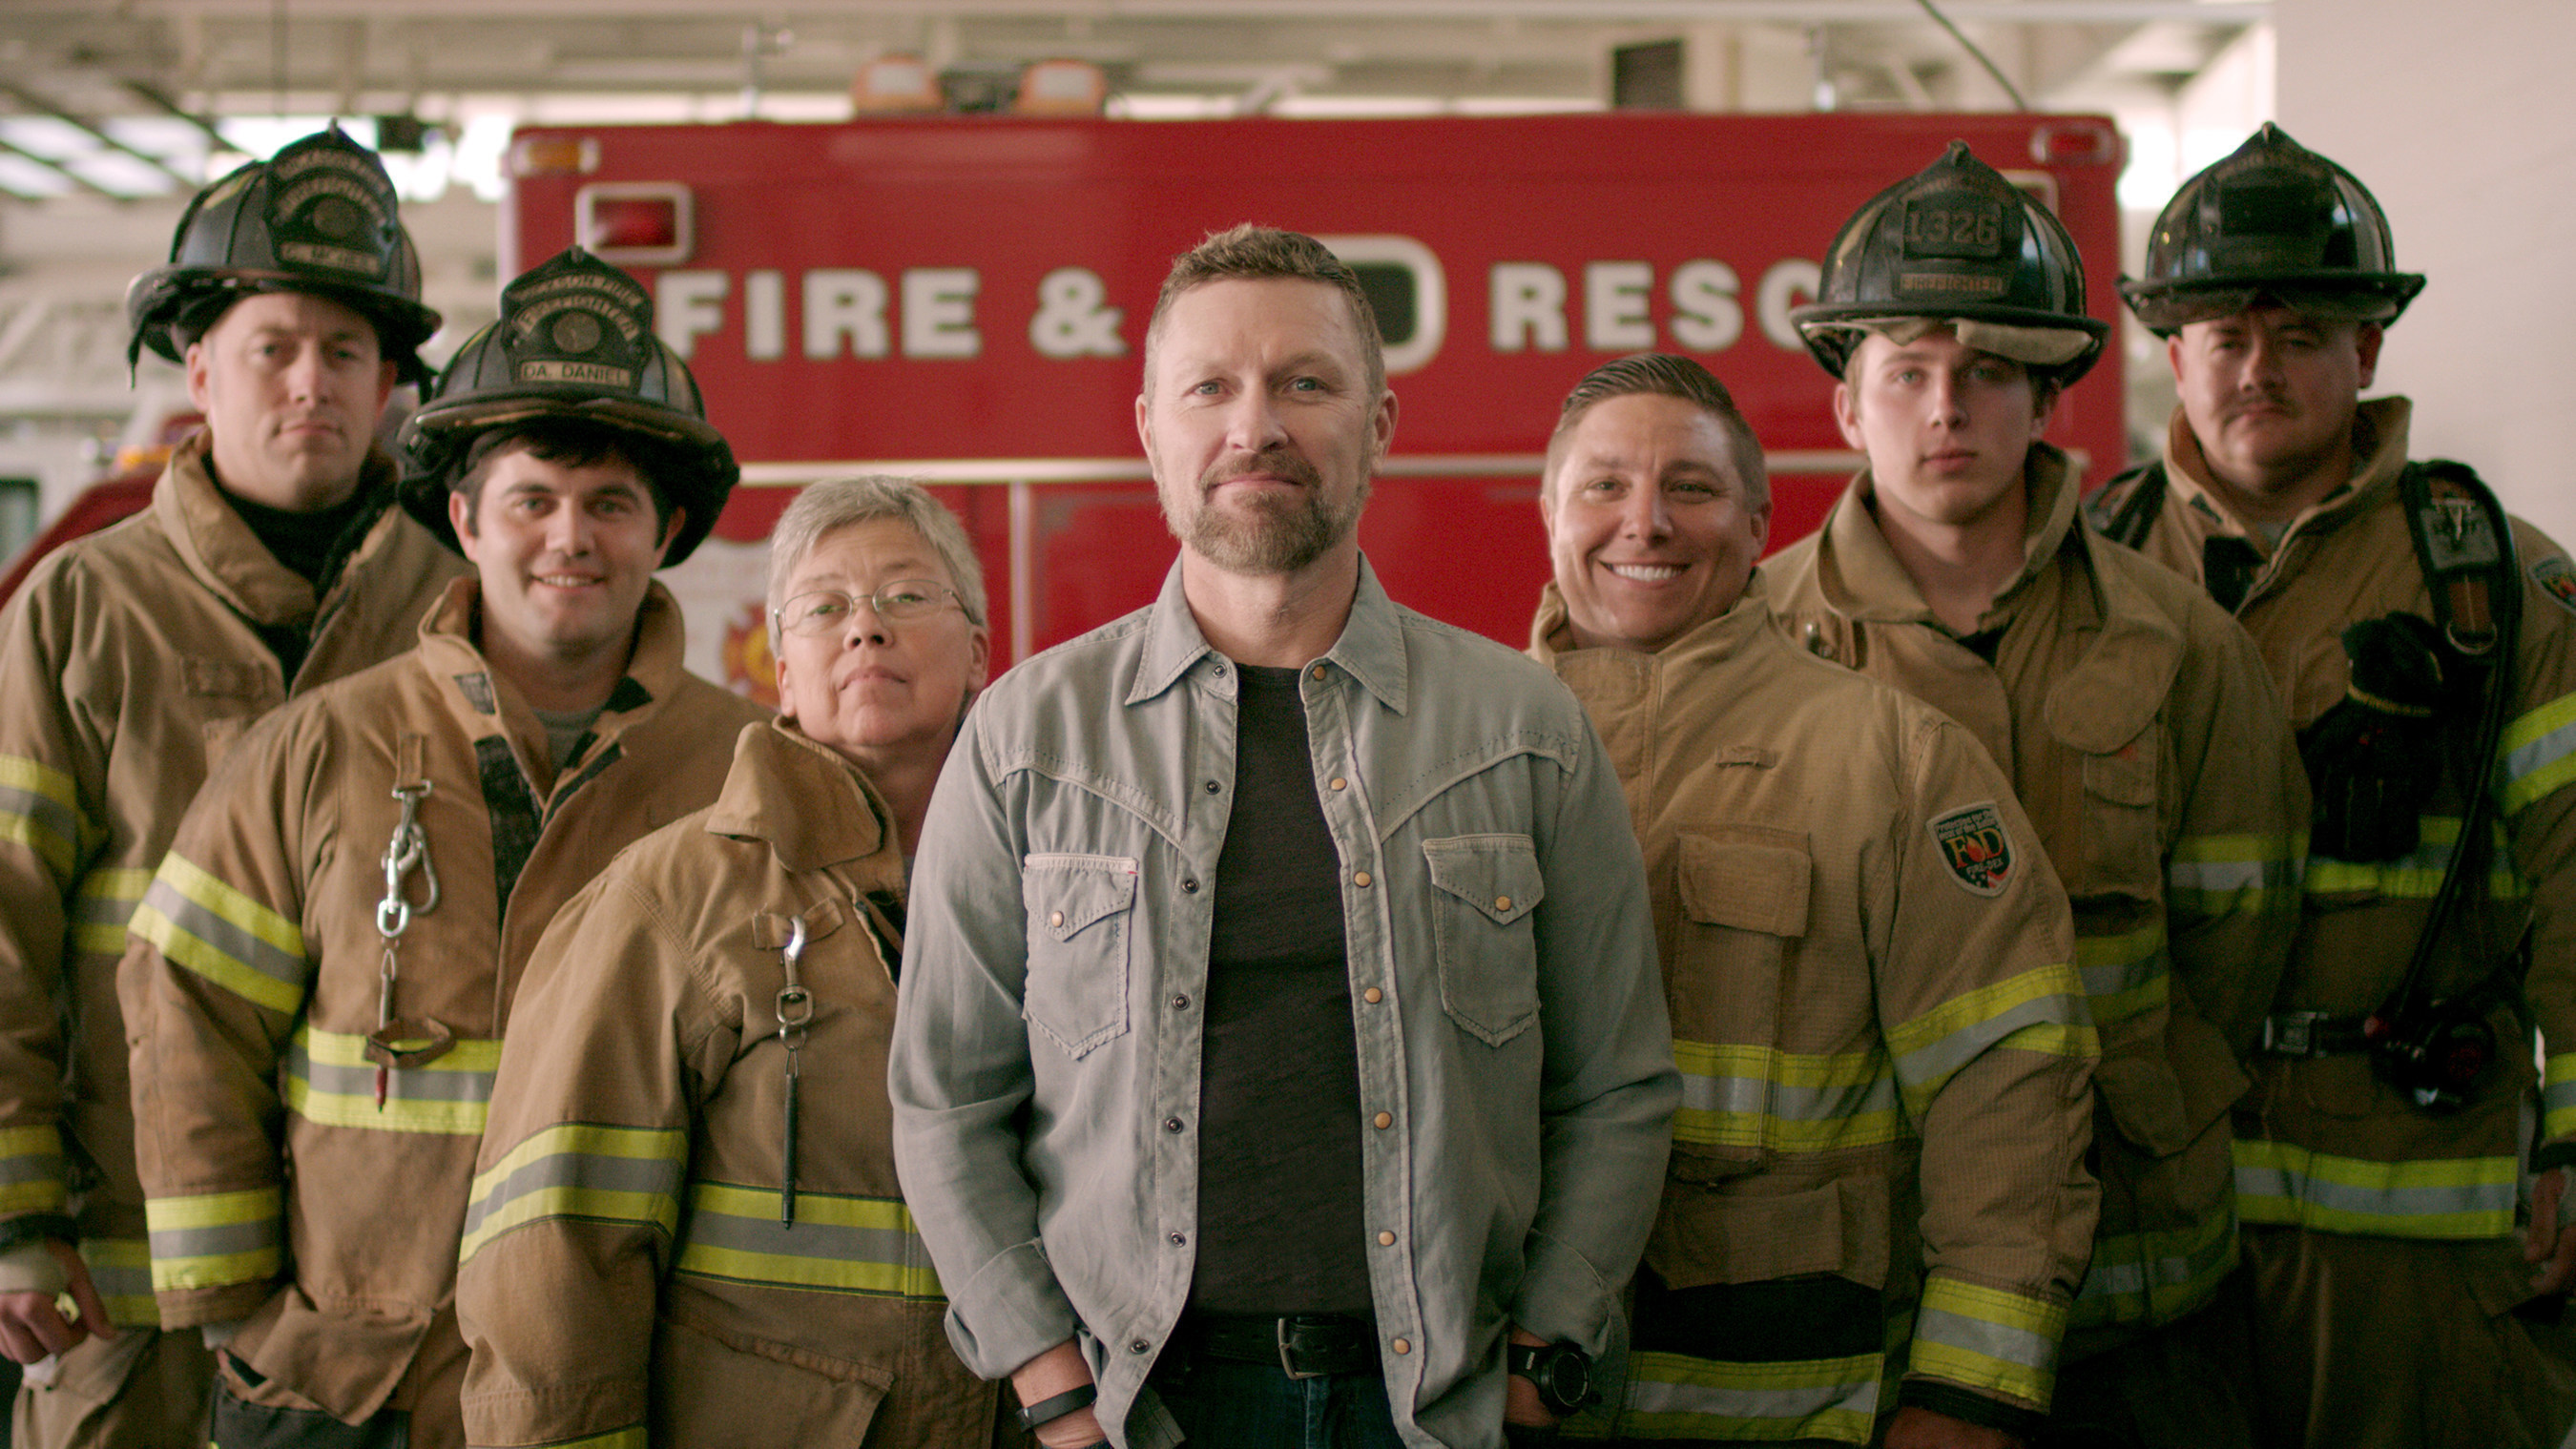 """Kidde Fire Safety has teamed up with Craig Morgan, Country Music star and former first responder, Firehouse, the International Association of Fire Chiefs (IAFC), the National Fire Protection Association (NFPA) and National Fallen Firefighters Foundation to launch """"Step Up and Stand Out,"""" a national campaign to increase awareness of the need for volunteer firefighters. To learn more, go to www.firehouse.com/vf."""